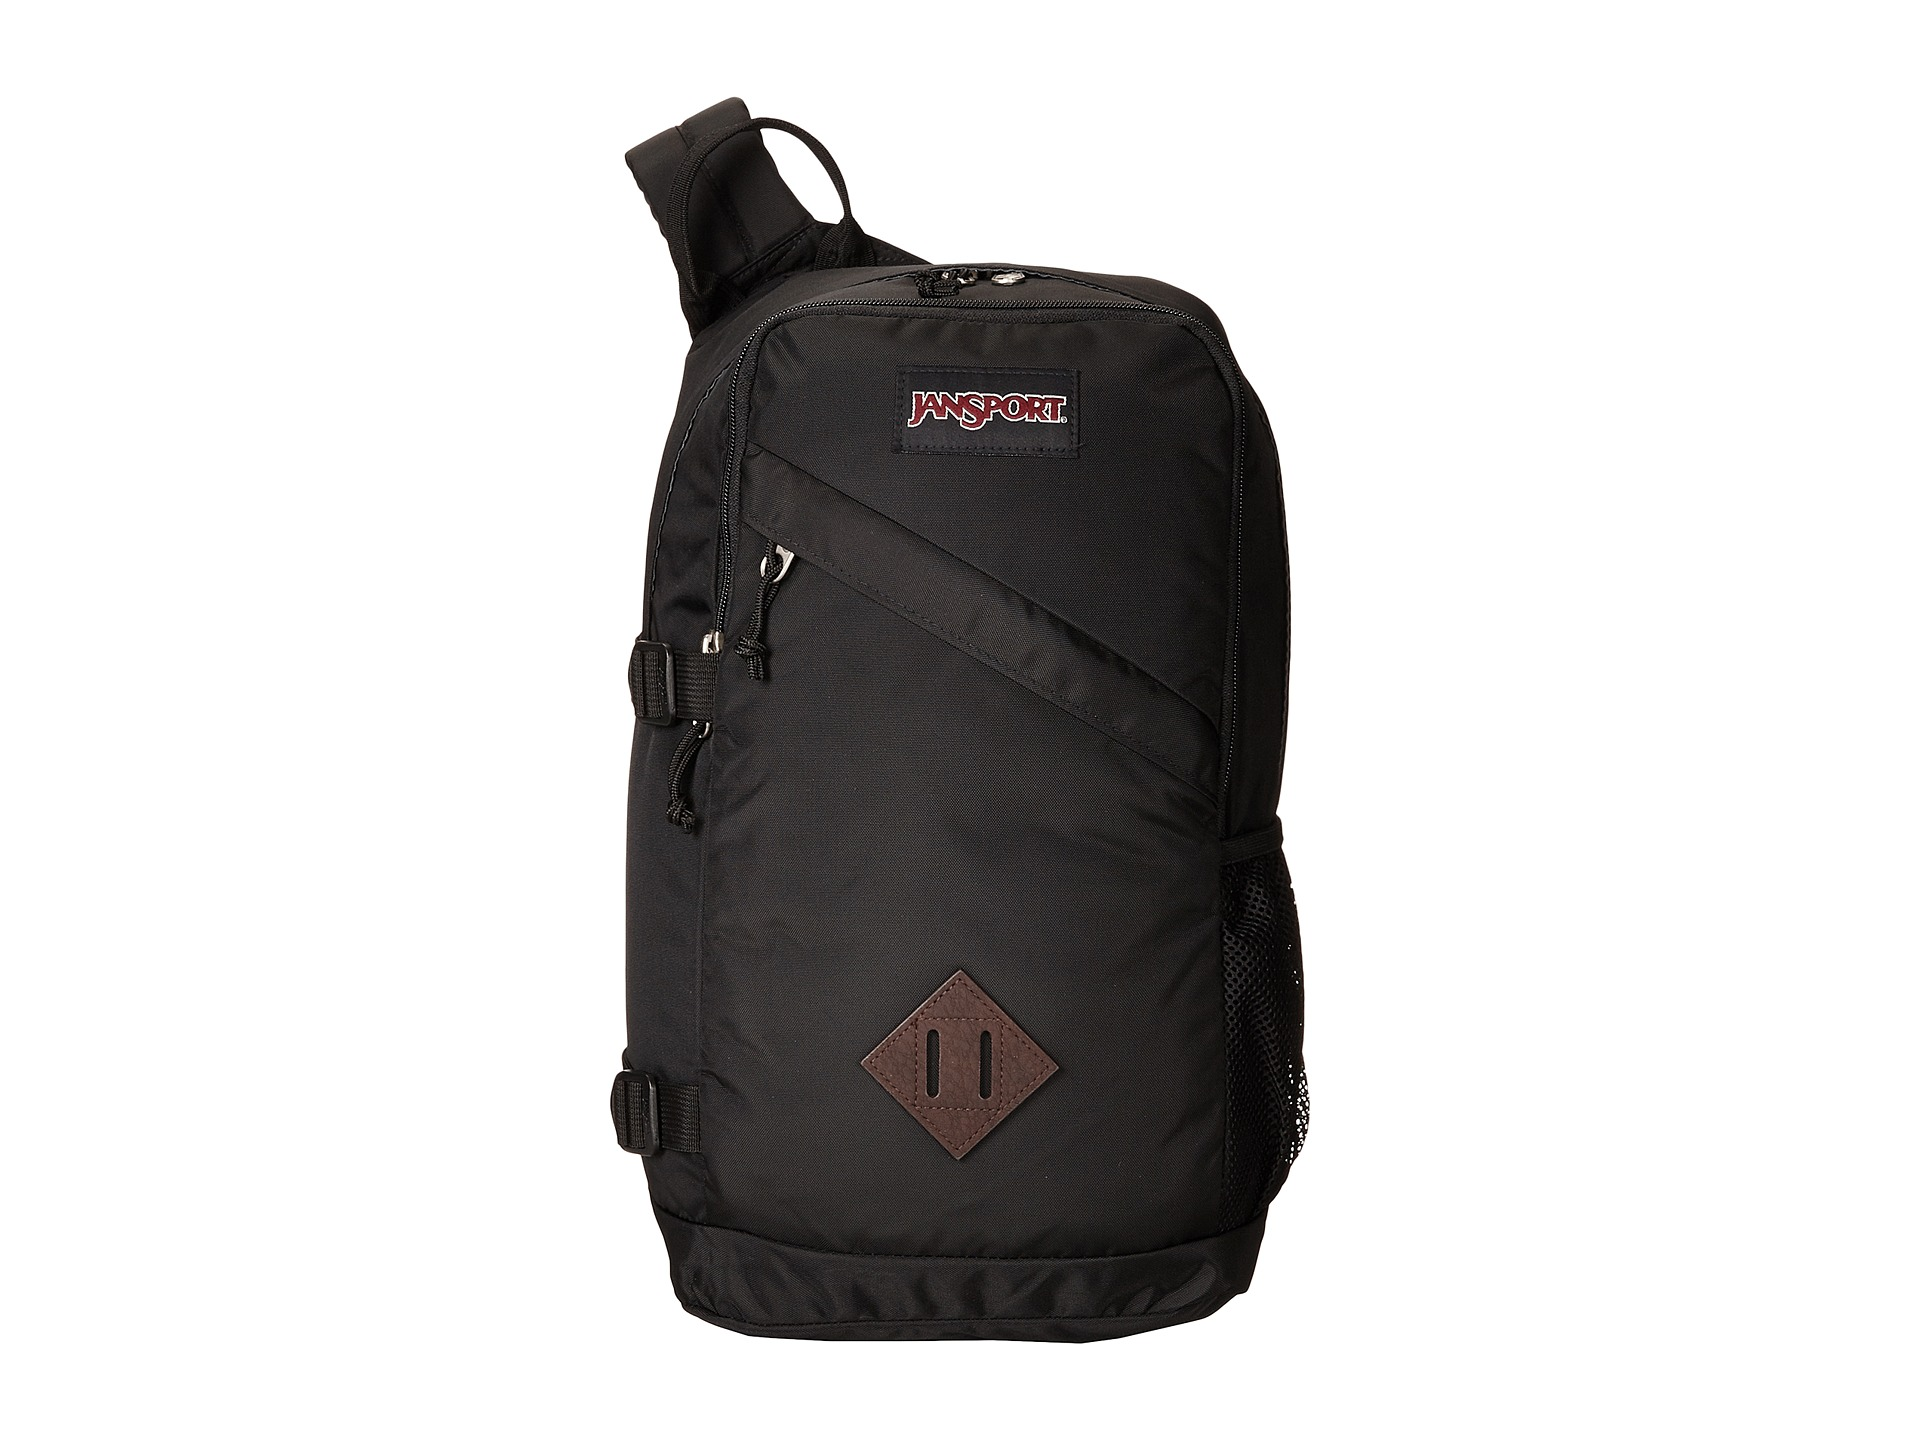 Single Strap Backpack Jansport - Crazy Backpacks